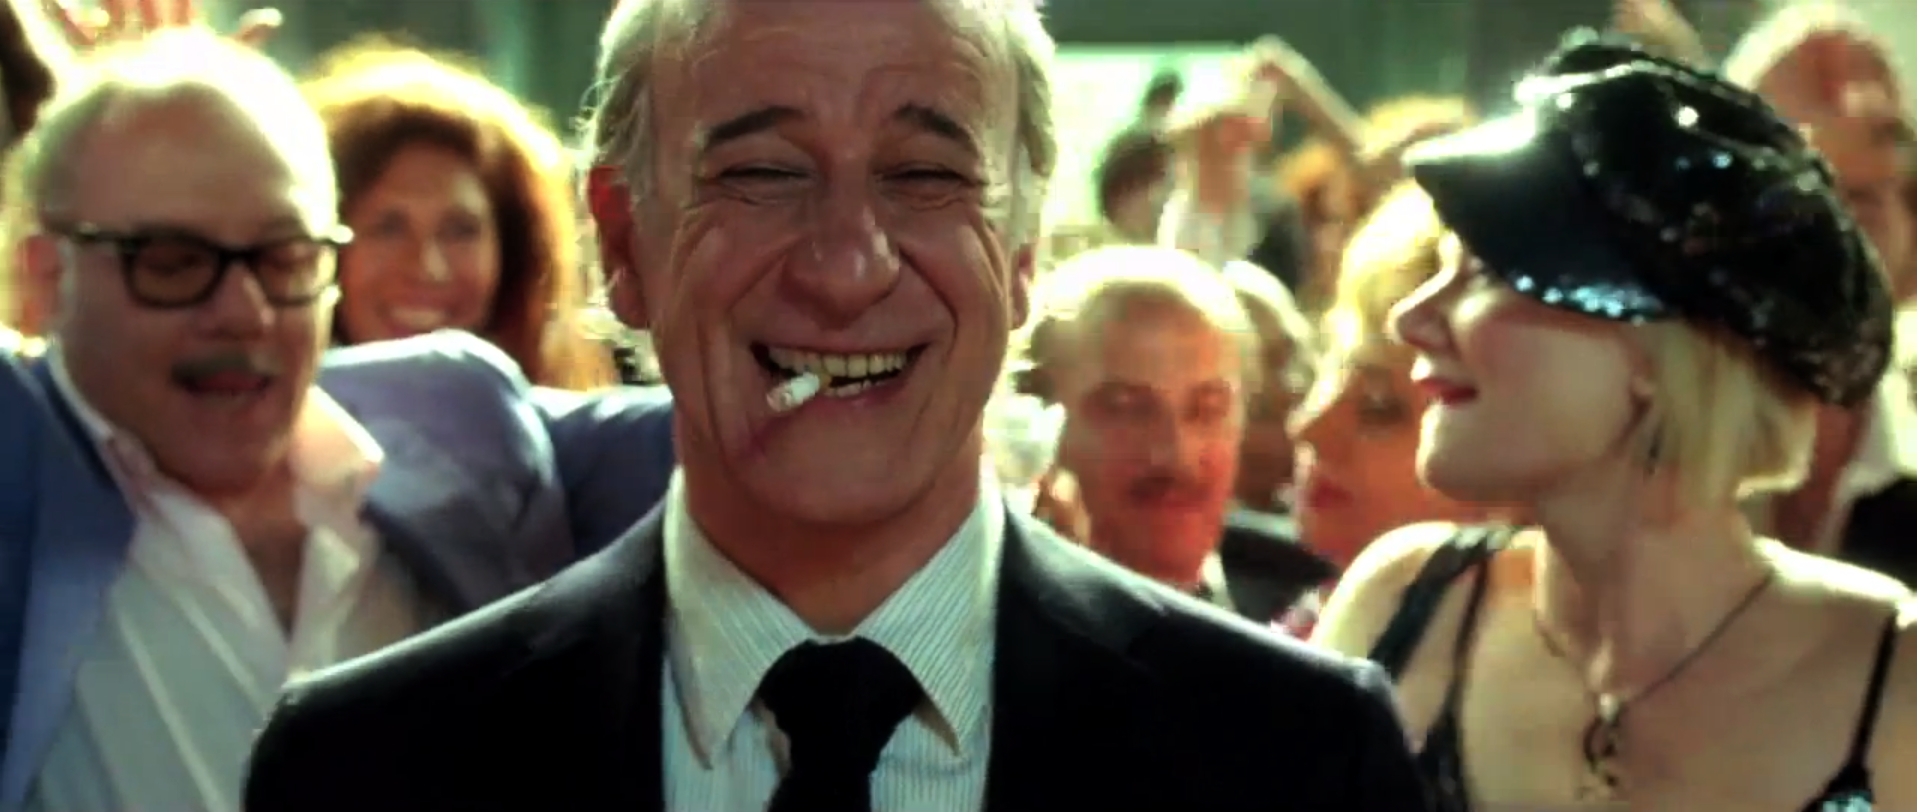 La grande bellezza (2013) by Paolo Sorrentino